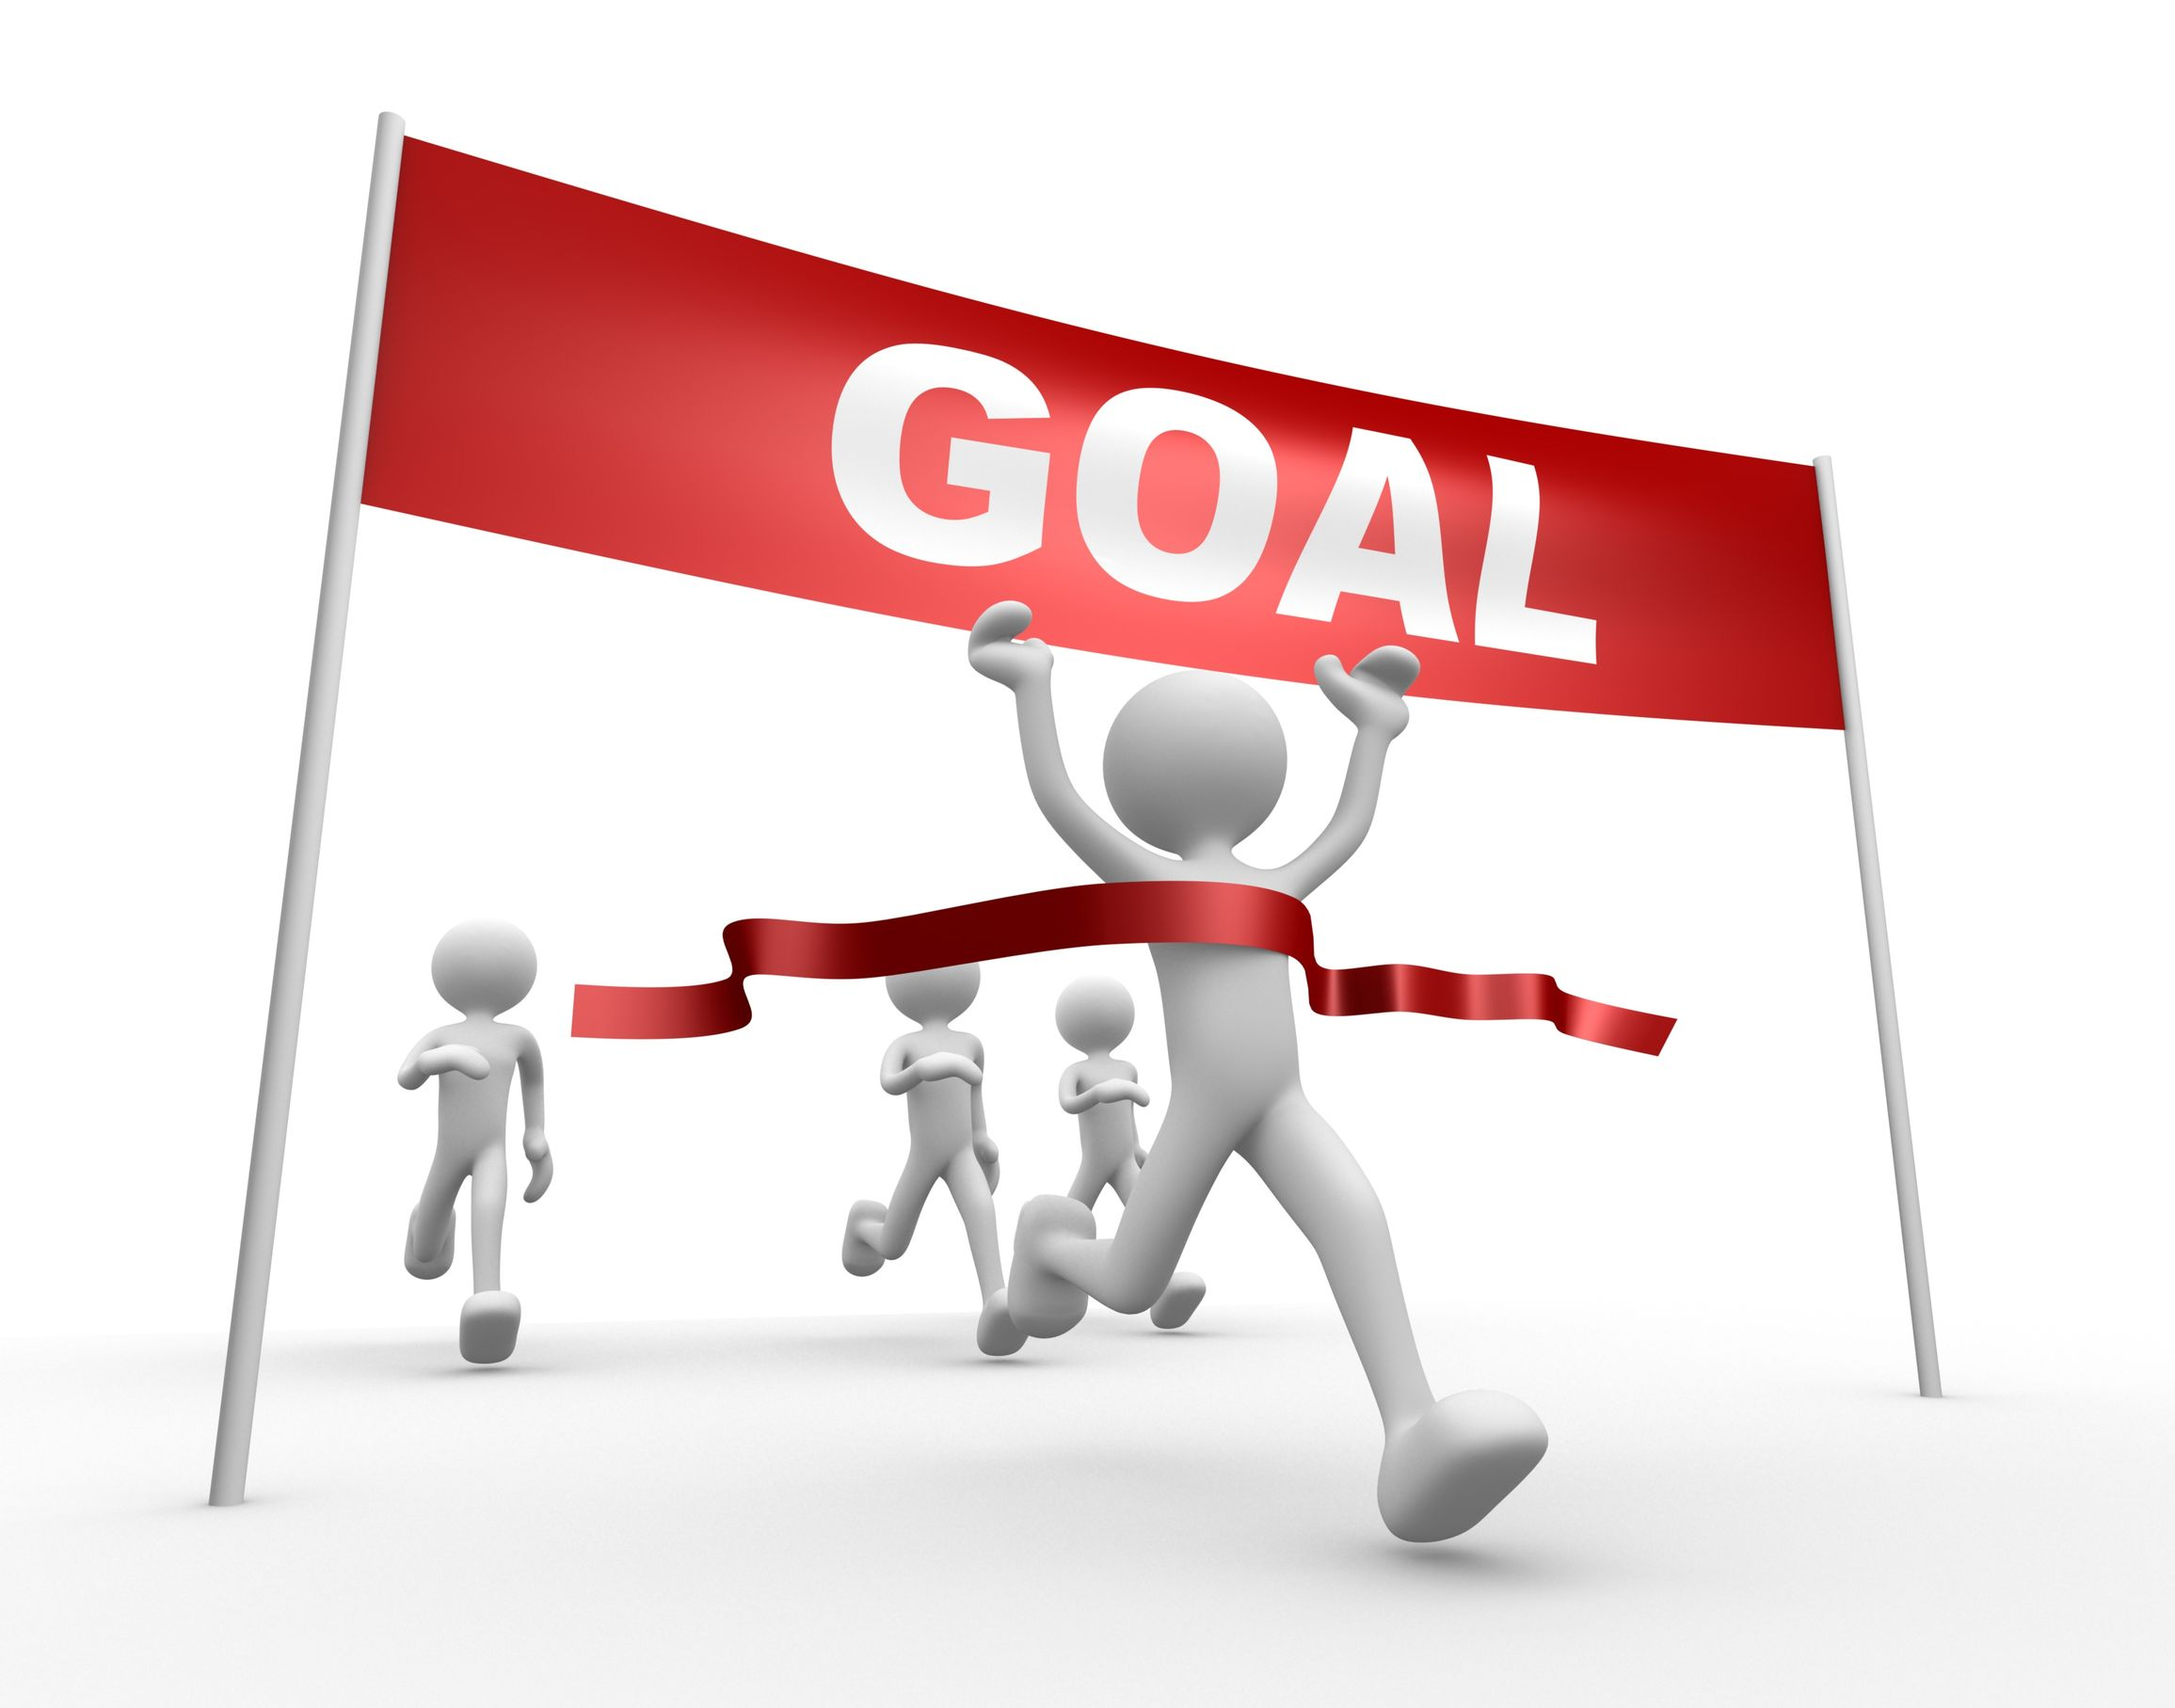 3 Easy Ways to Advance Your Goals